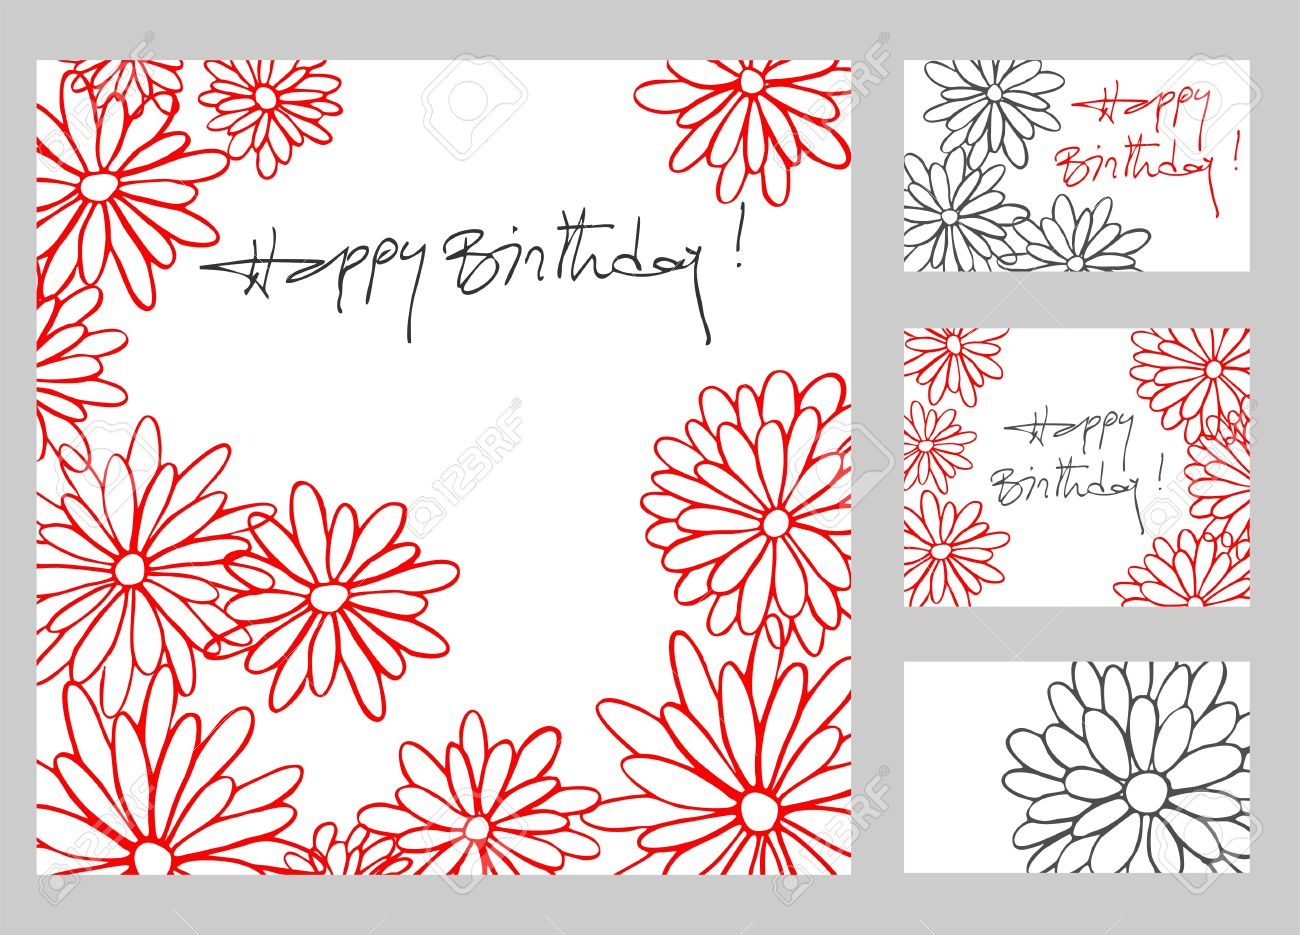 Happy birthday greetings cards set with hand drawn flowers royalty happy birthday greetings cards set with hand drawn flowers stock vector 18677569 kristyandbryce Gallery